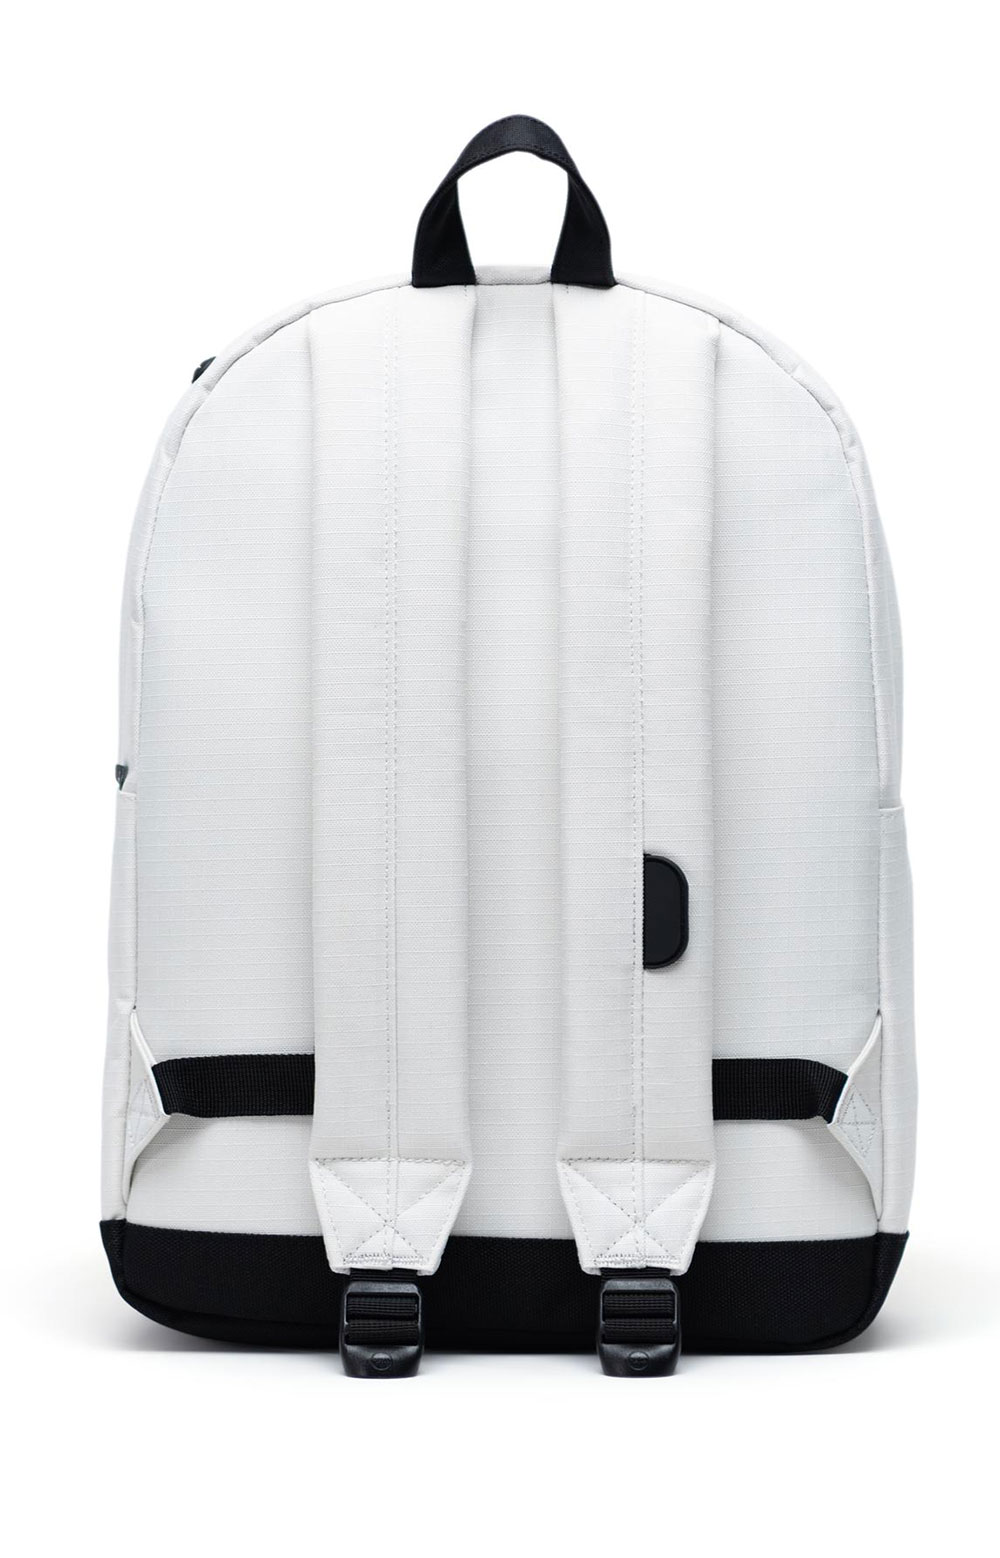 Pop Quiz Backpack - Blanc De Blanc Ripstop/Black 4